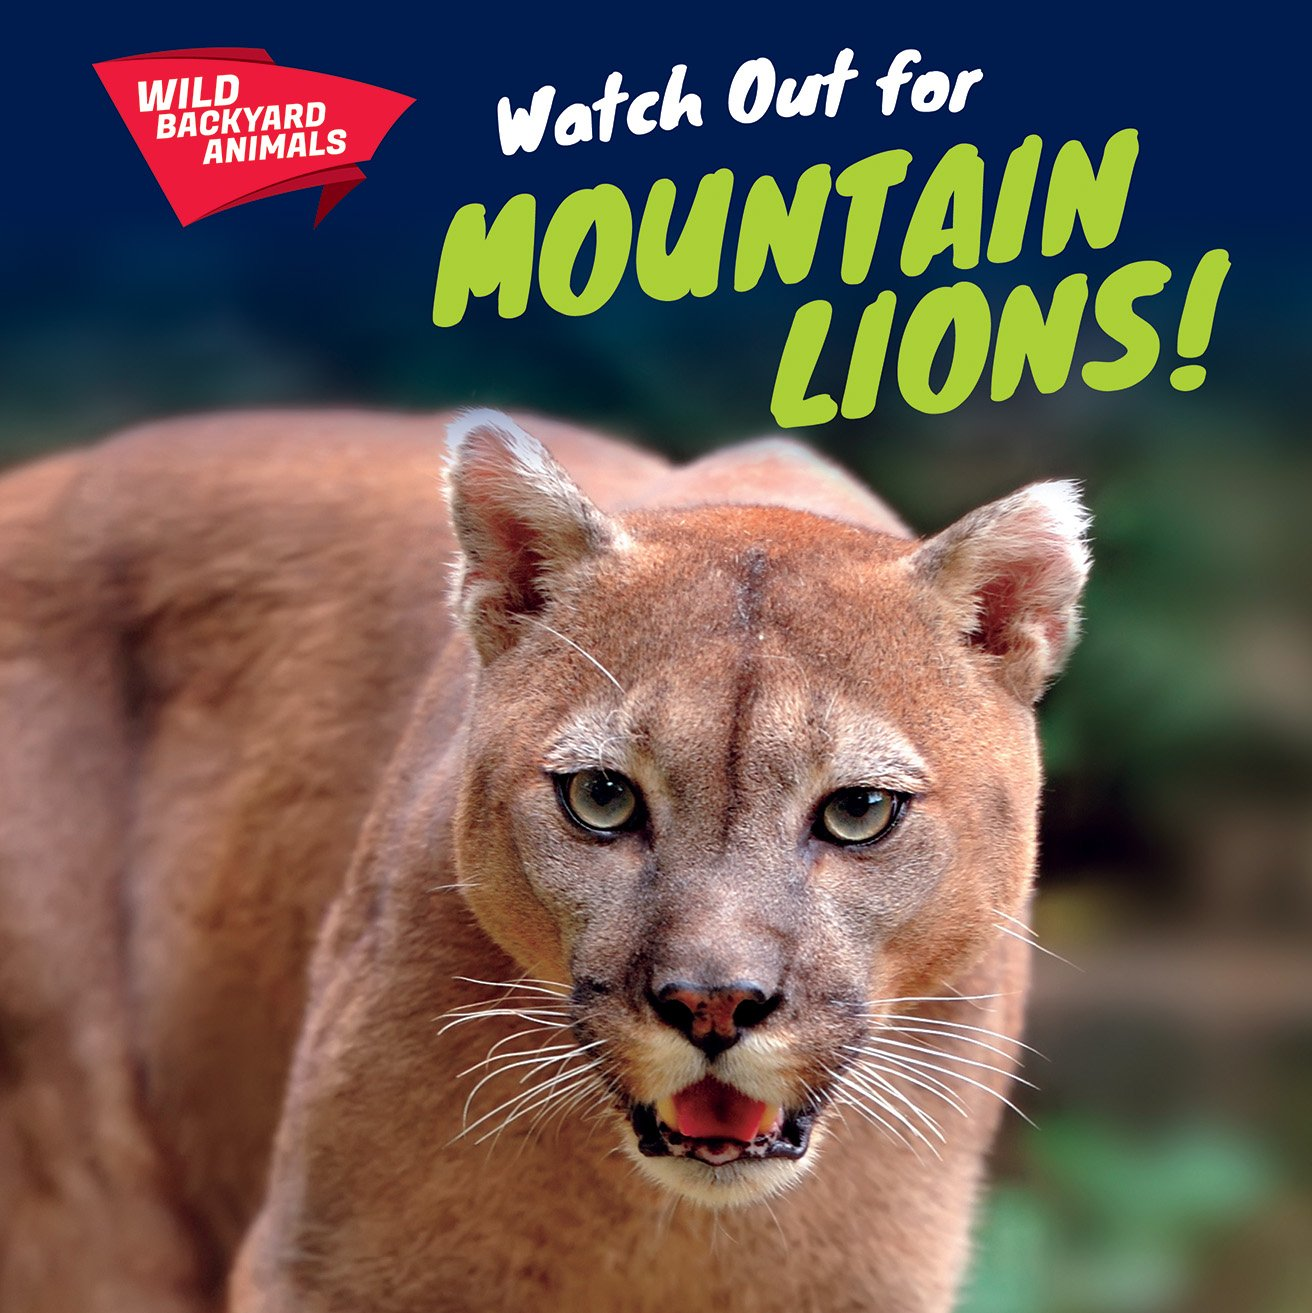 Watch Out for Mountain Lions! (Wild Backyard Animals)